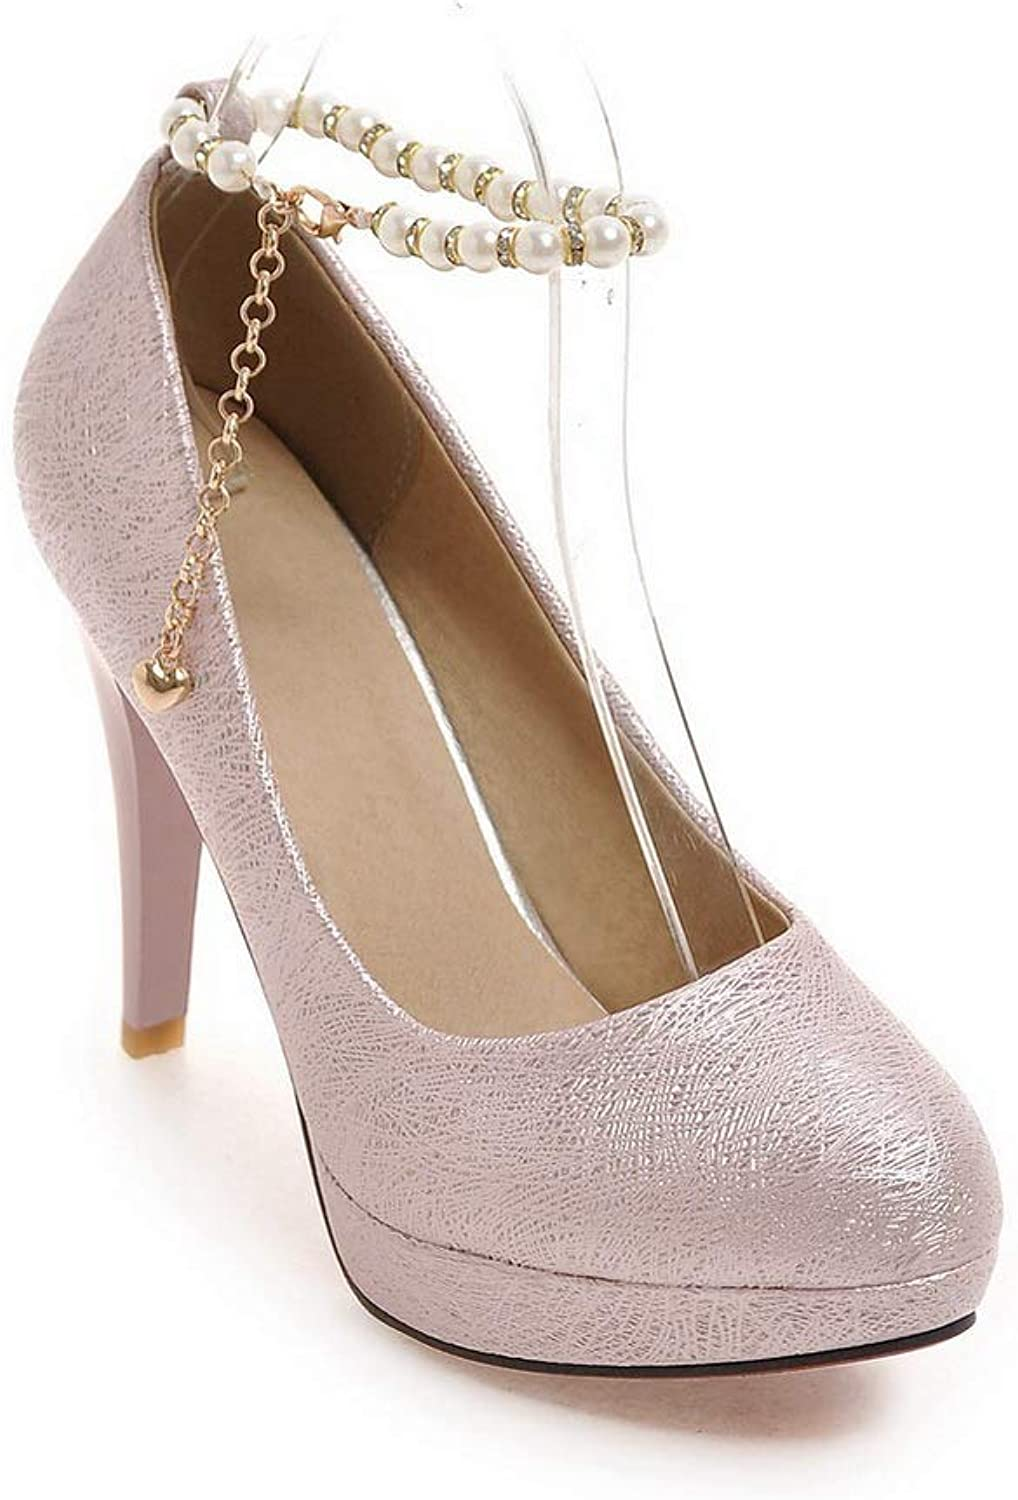 1TO9 Womens Platform Structured Beaded Urethane Pumps shoes MMS06284